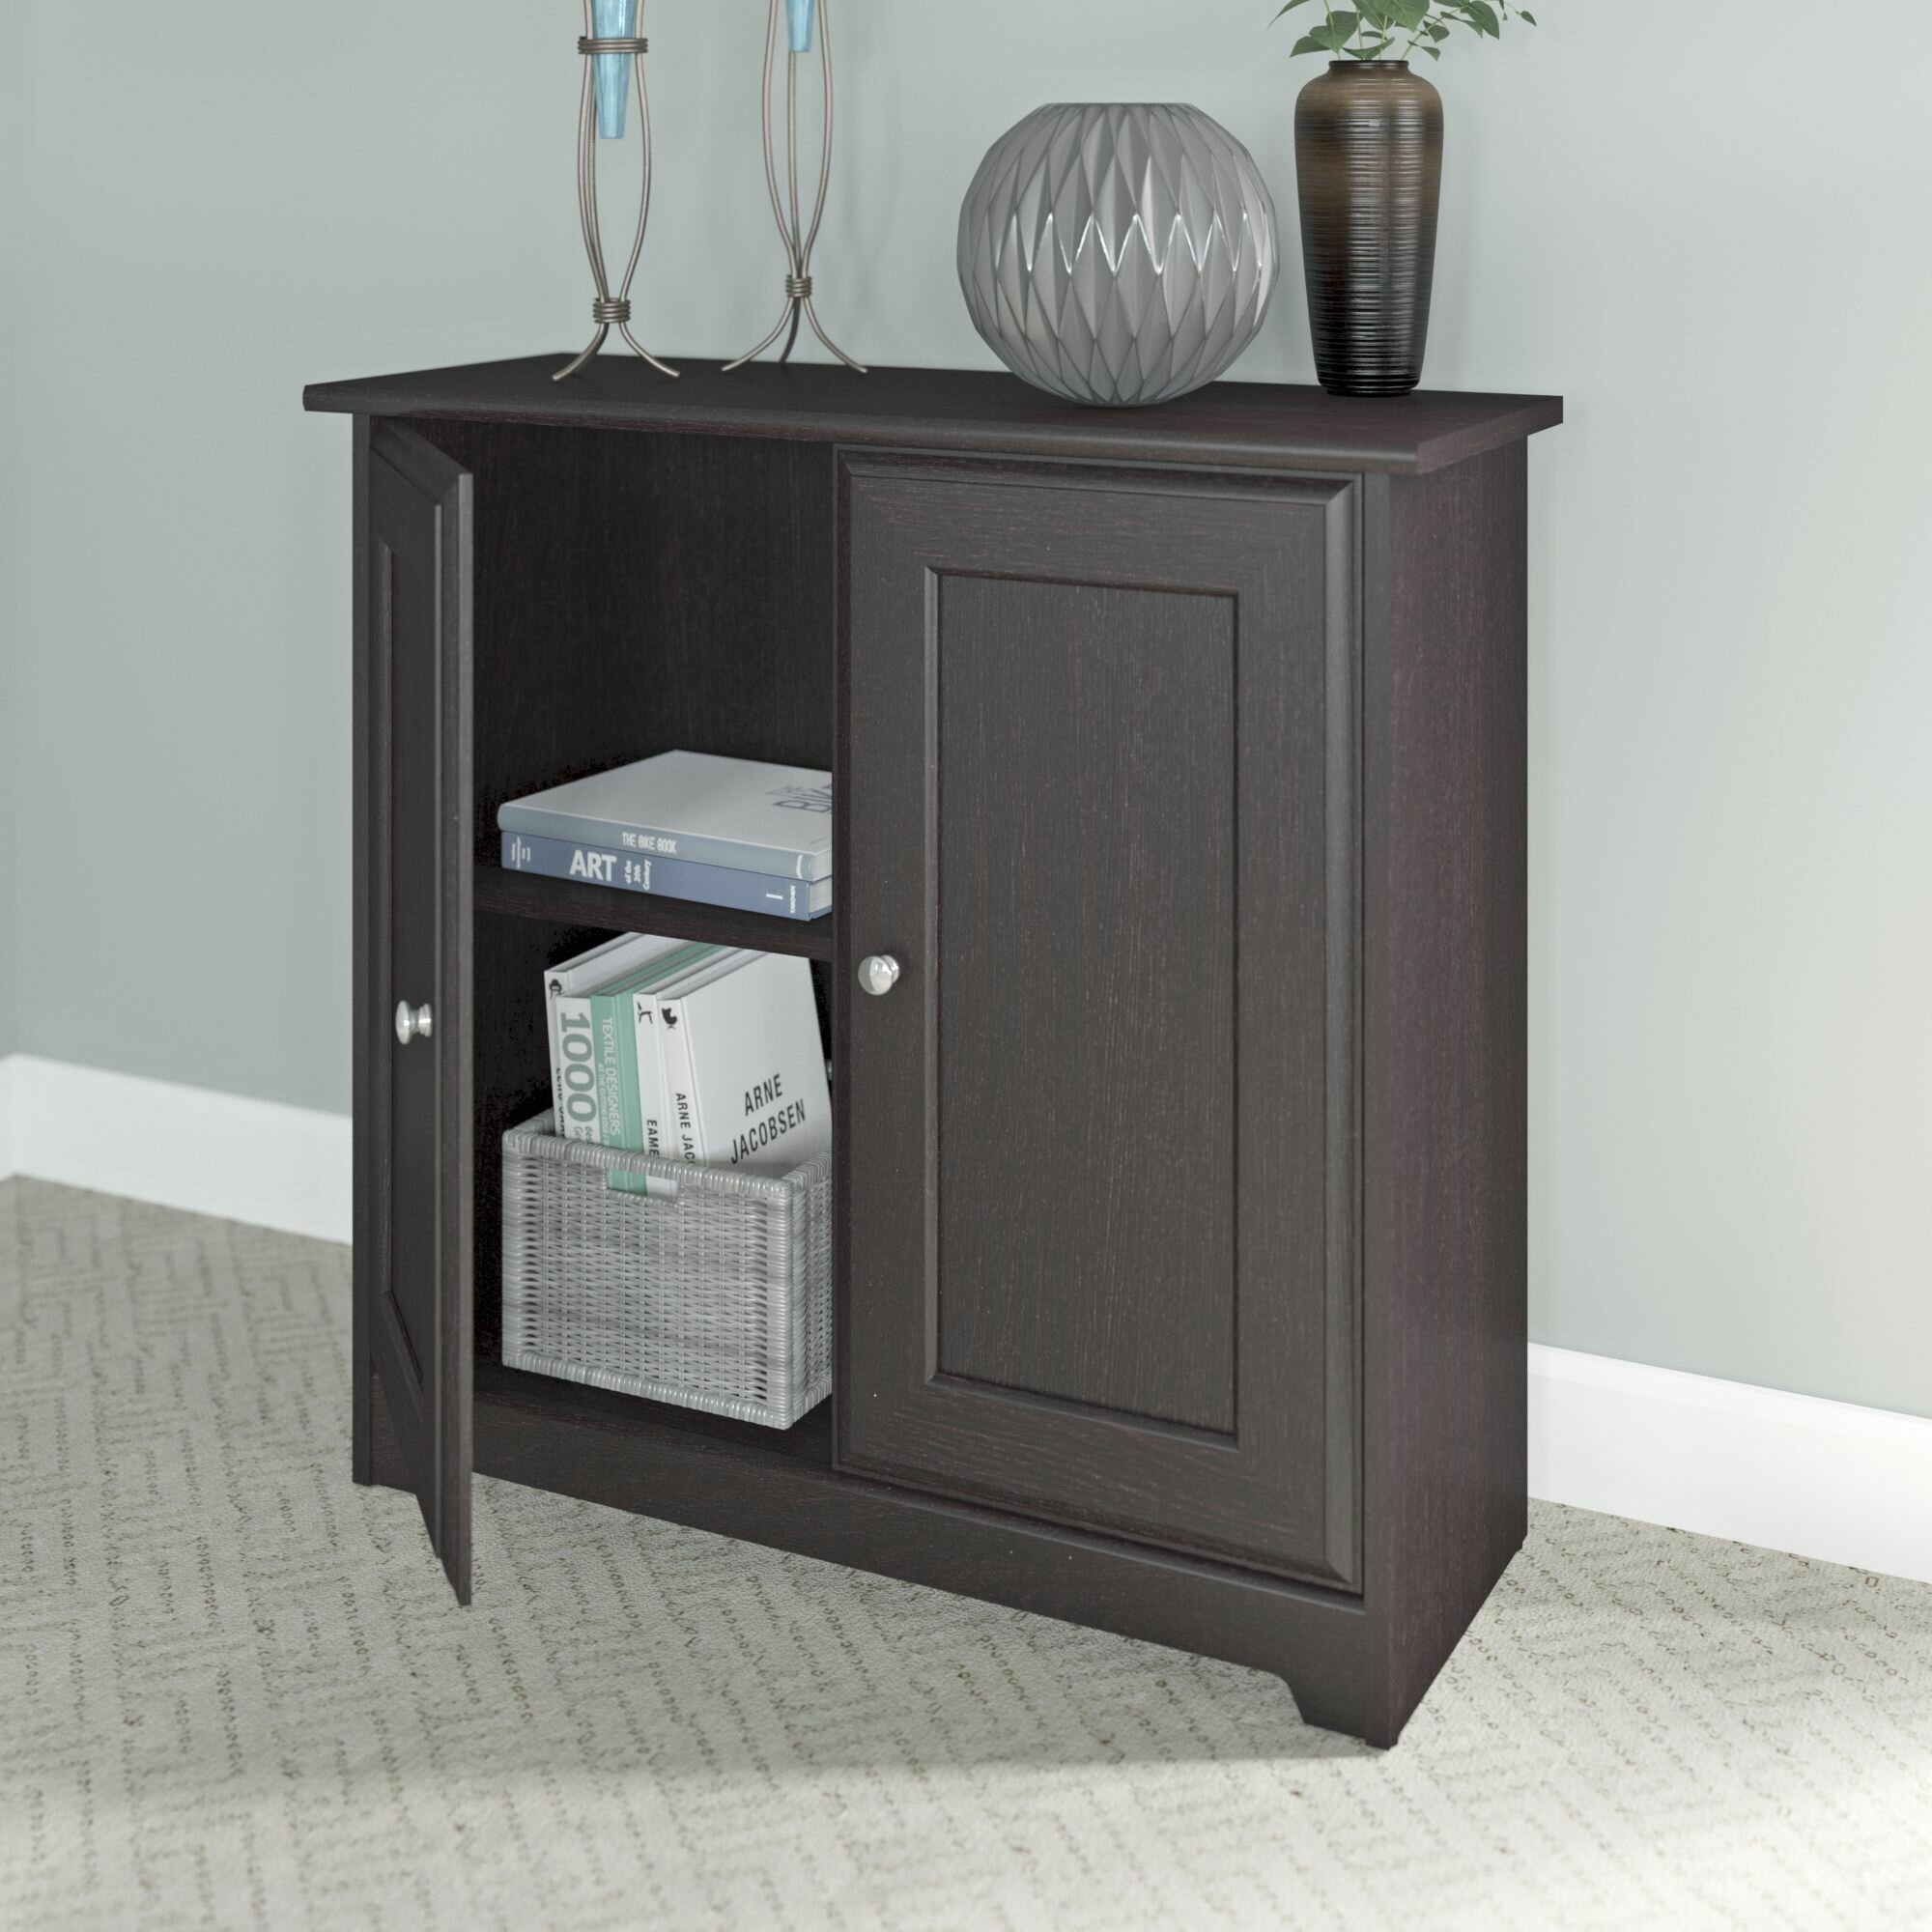 Bush furniture cabot 2 door storage cabinets reviews for One day doors and closets reviews